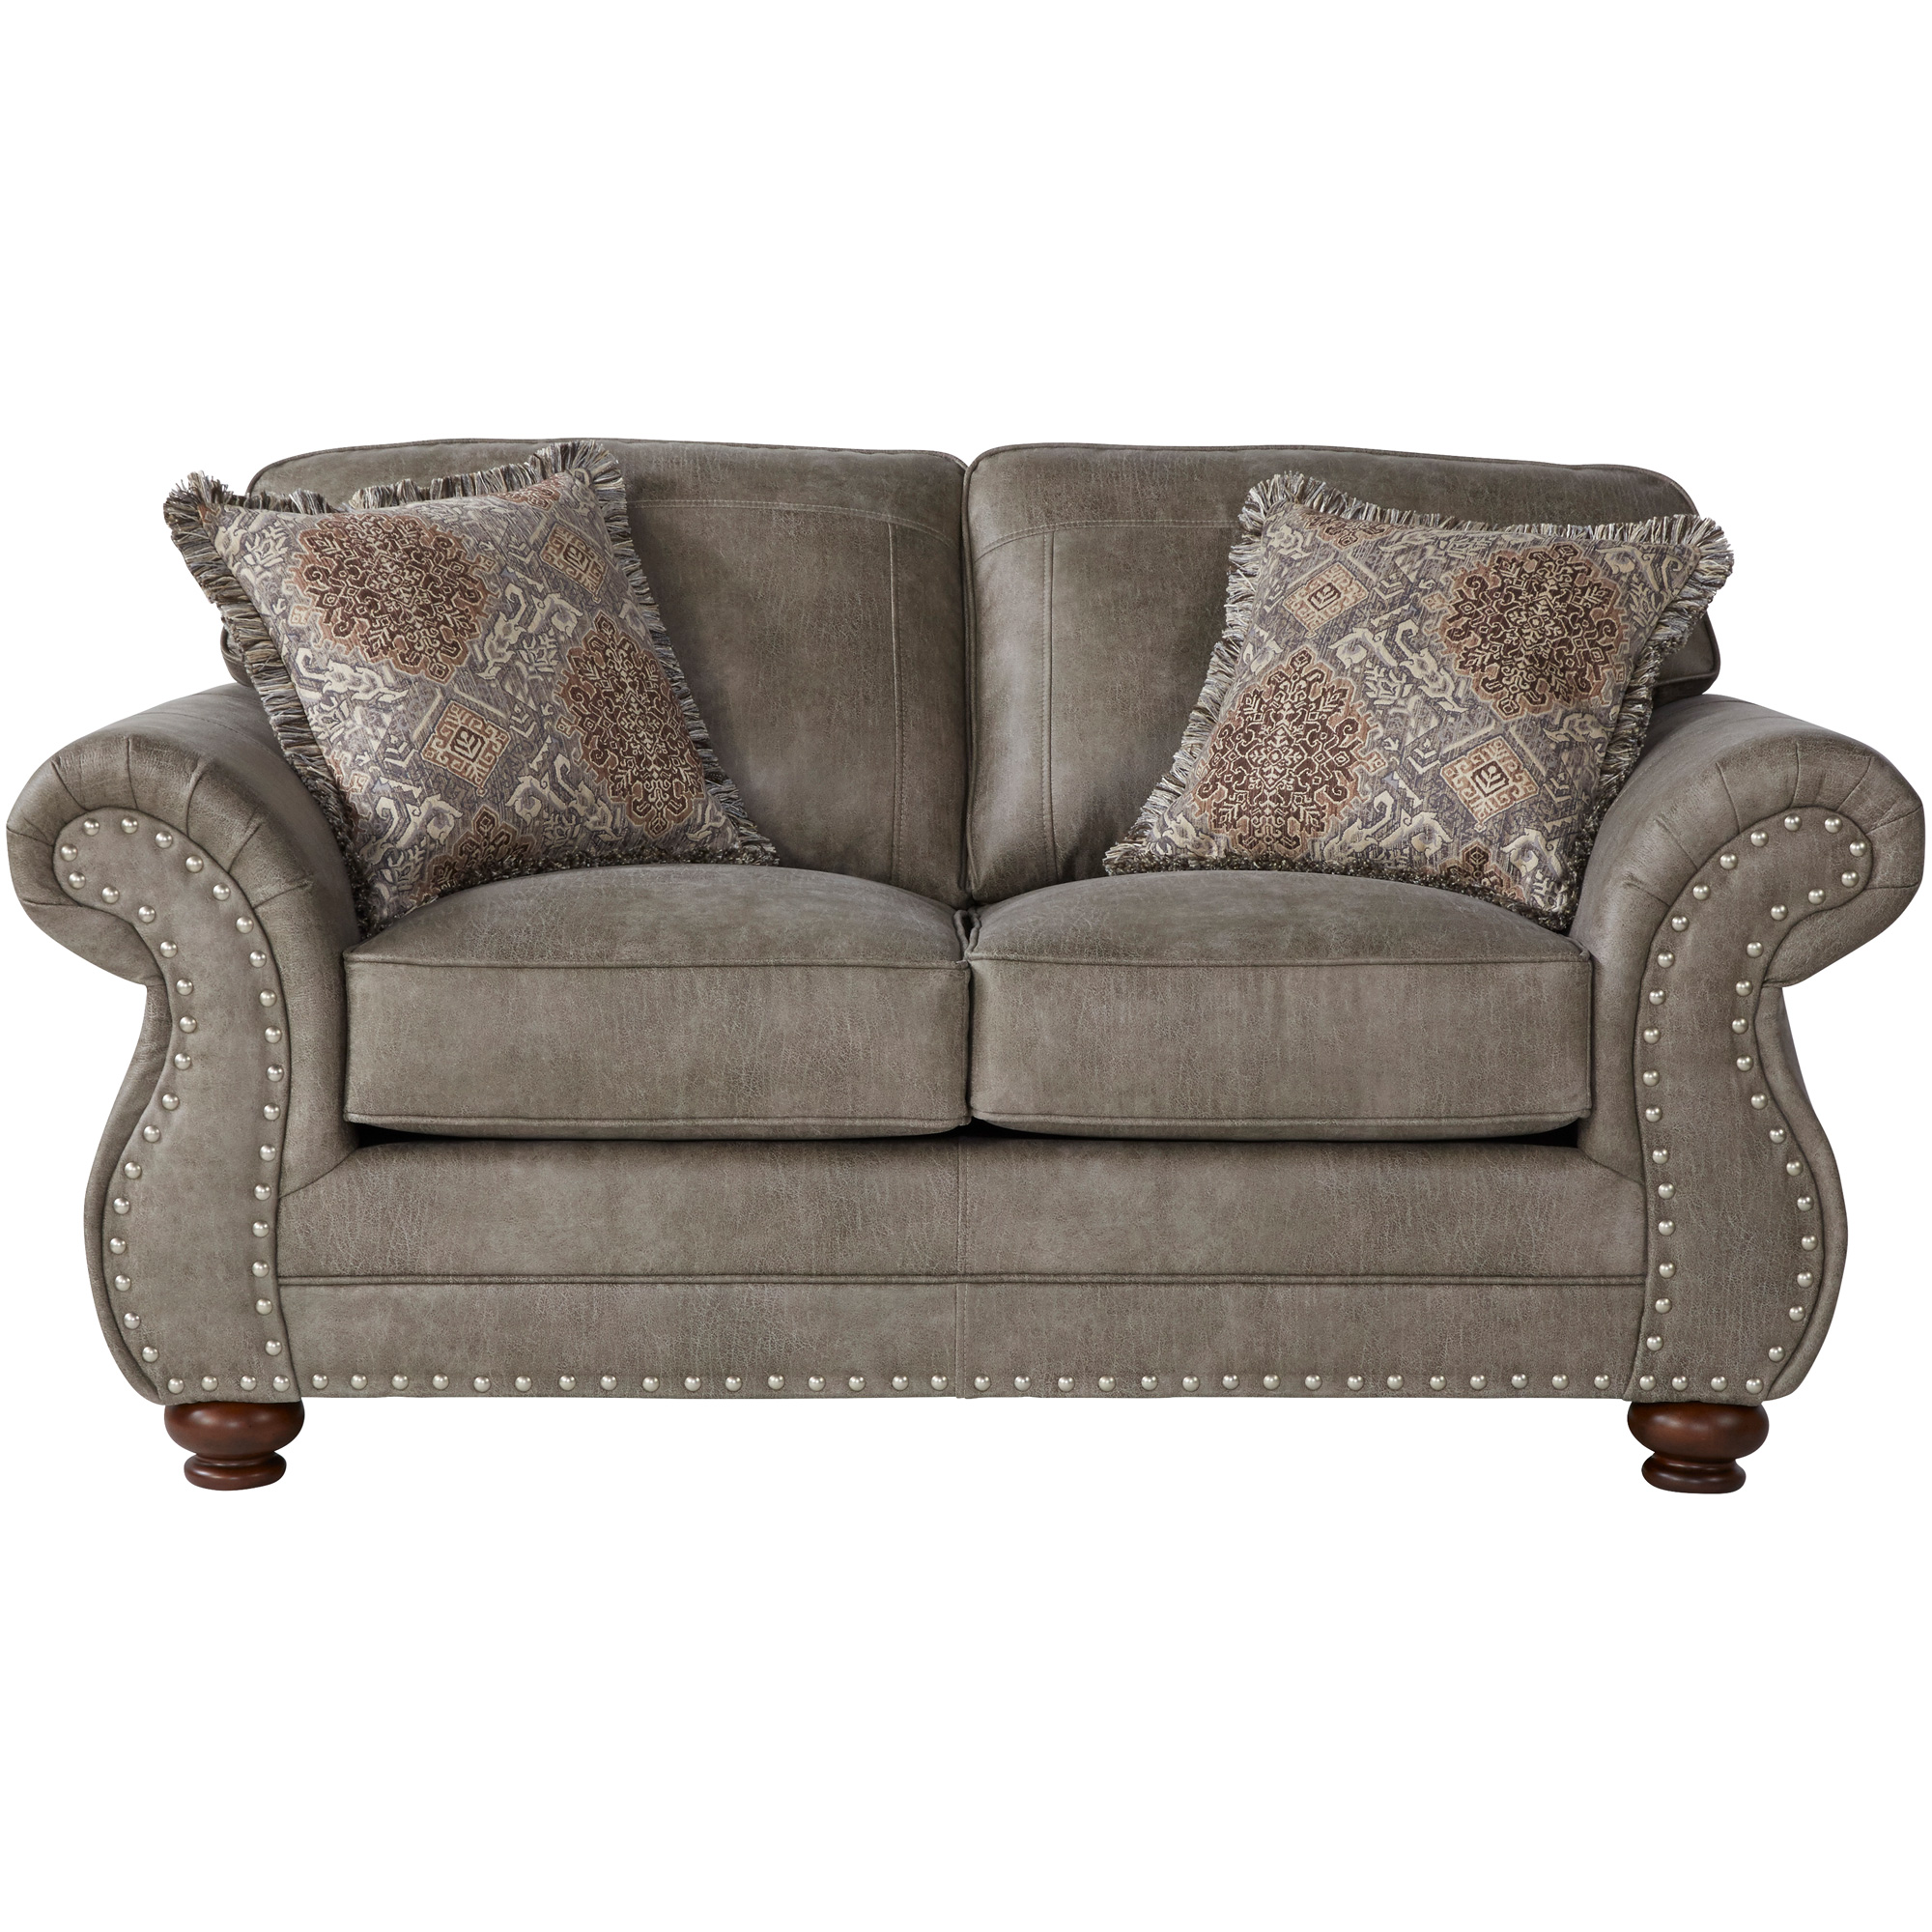 Serta Upholstery By Hughes Furniture | Bester Golitha Mica Loveseat Sofa